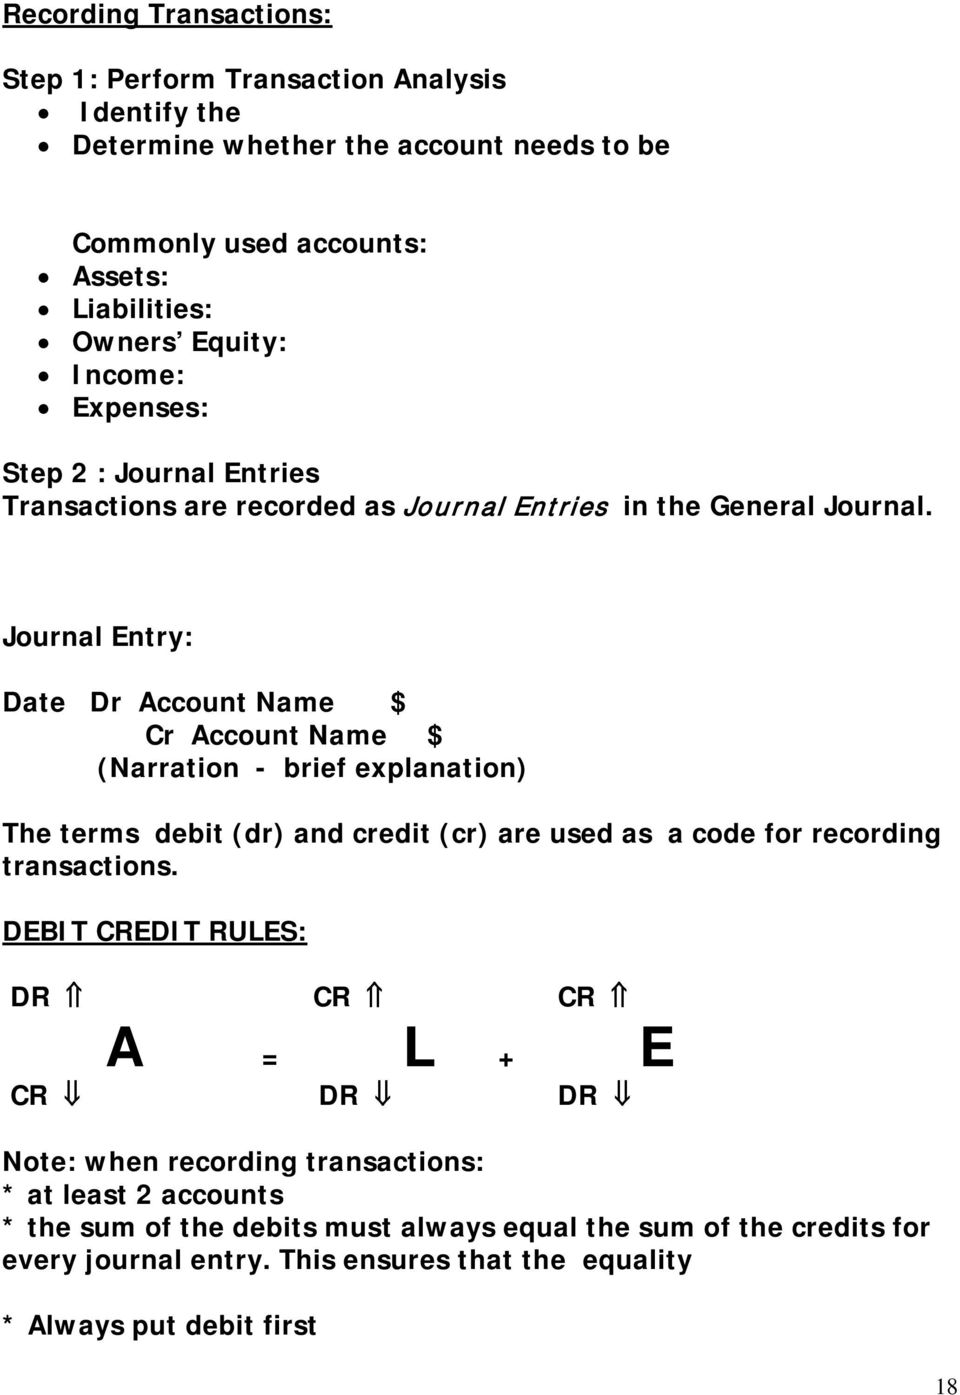 Journal Entry: Date Dr Account Name $ Cr Account Name $ (Narration - brief explanation) The terms debit (dr) and credit (cr) are used as a code for recording transactions.